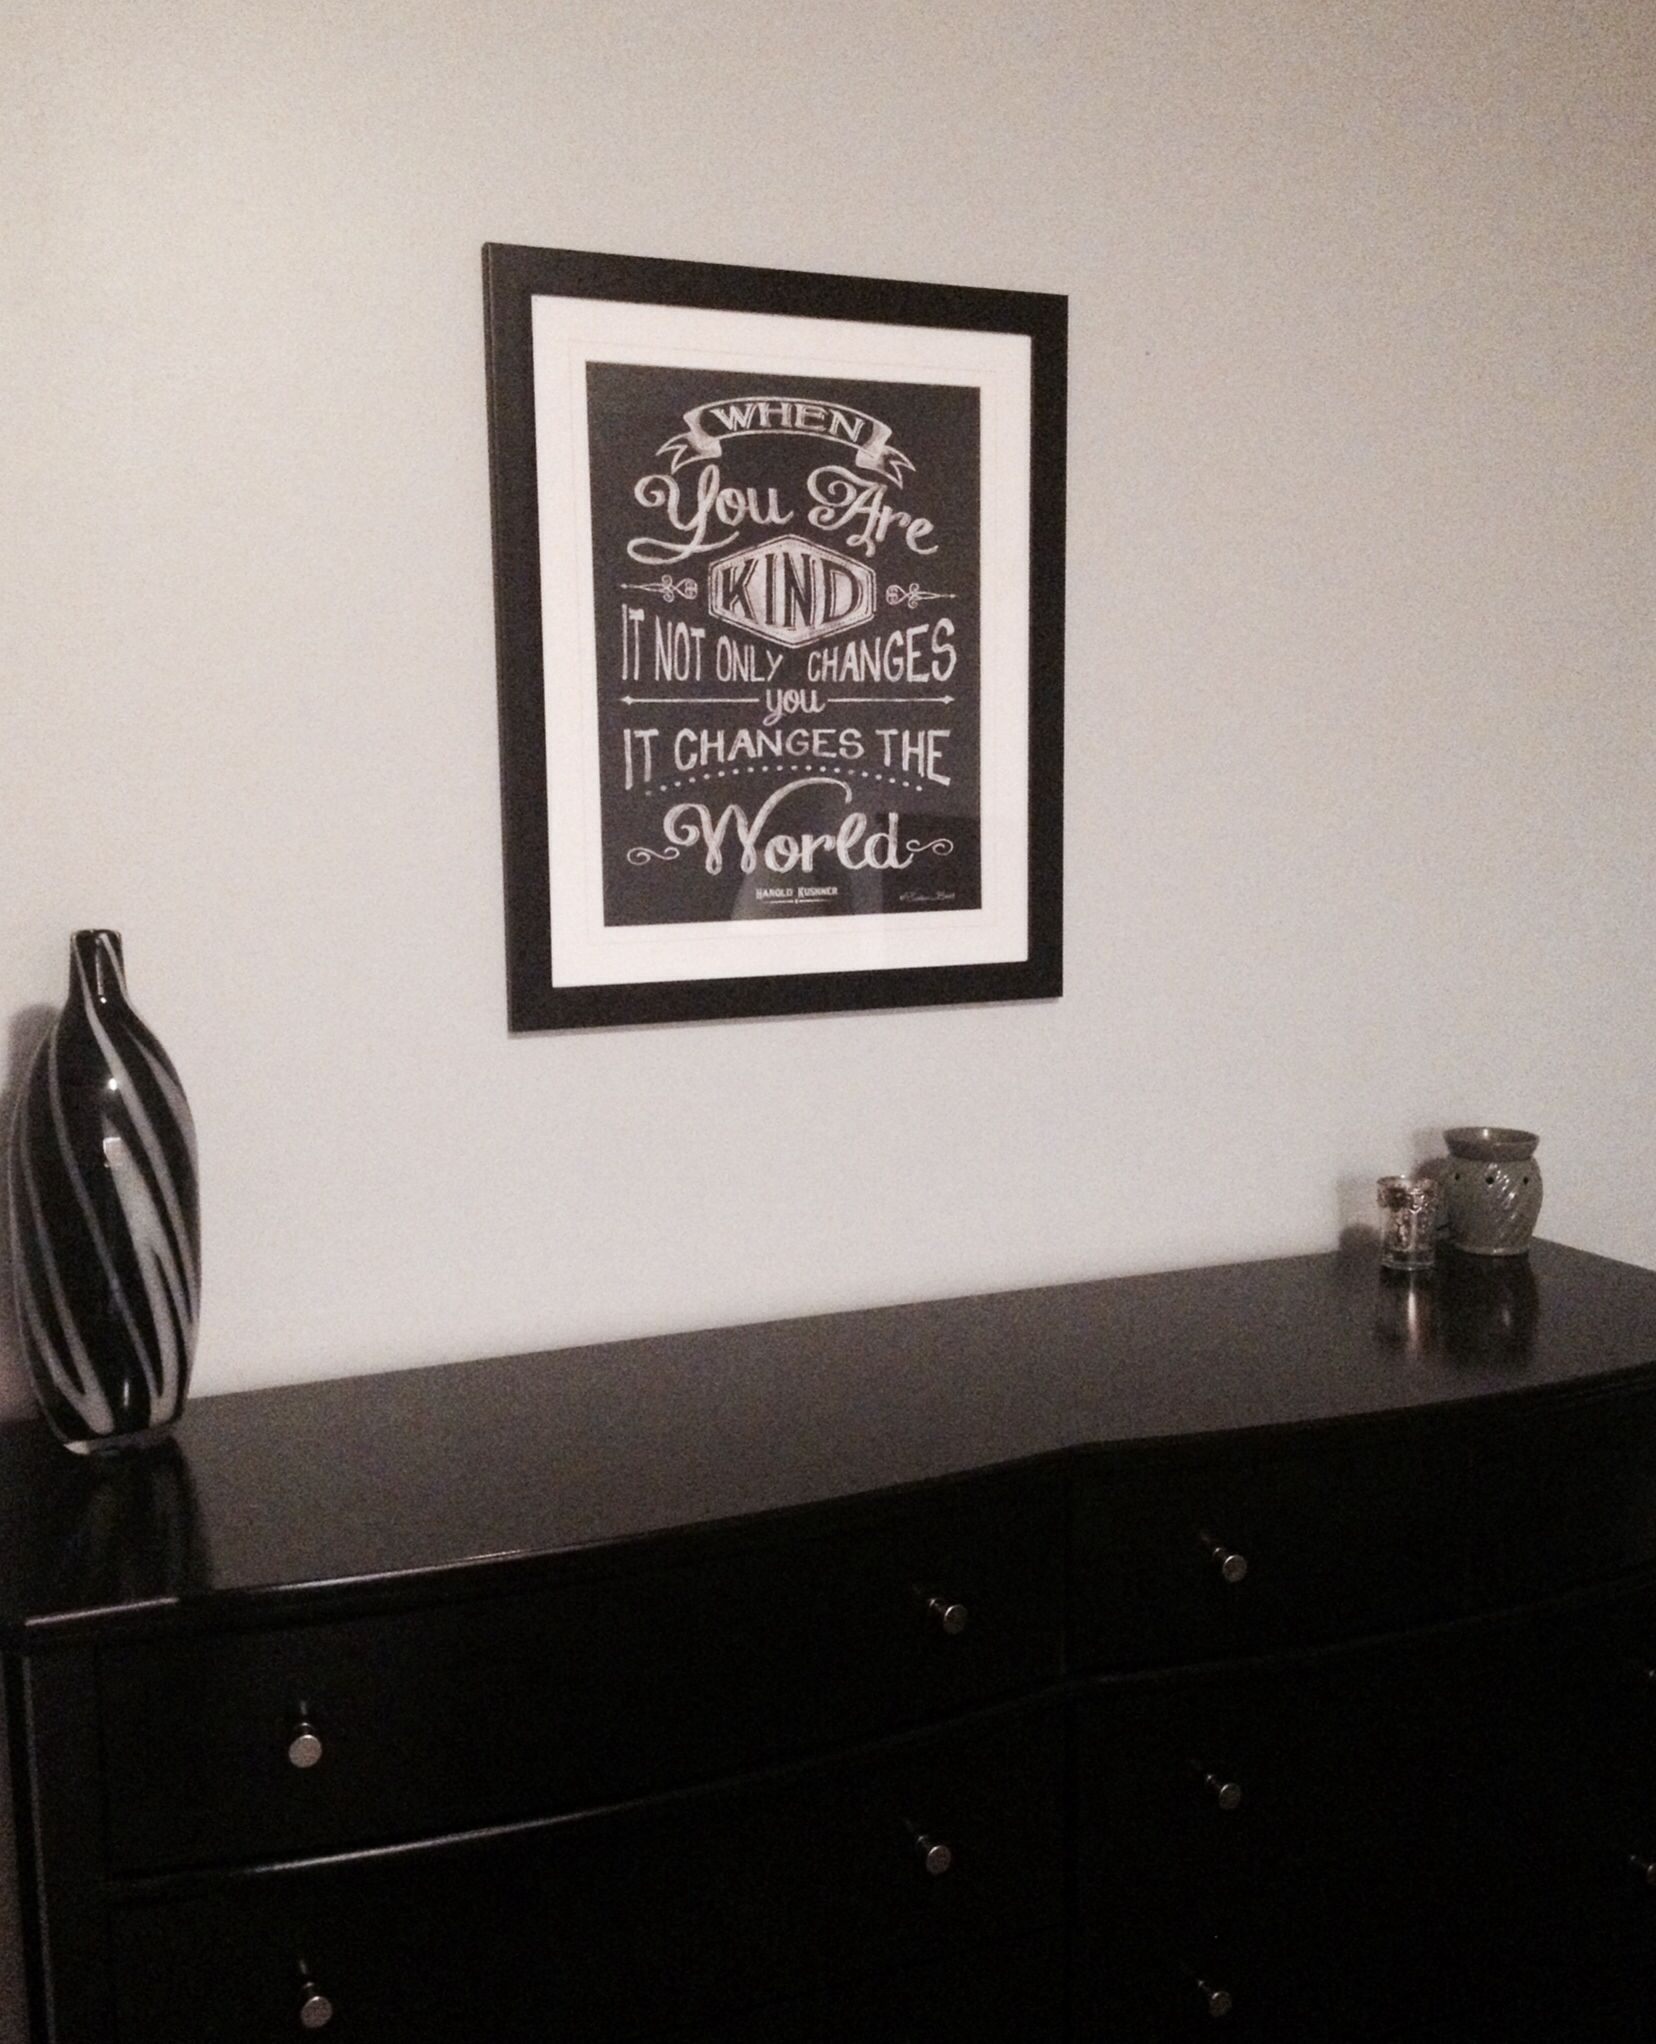 Gordmans Wall Art | Our Home | Pinterest | Walls Pertaining To Best And Newest Gordmans Canvas Wall Art (View 9 of 15)